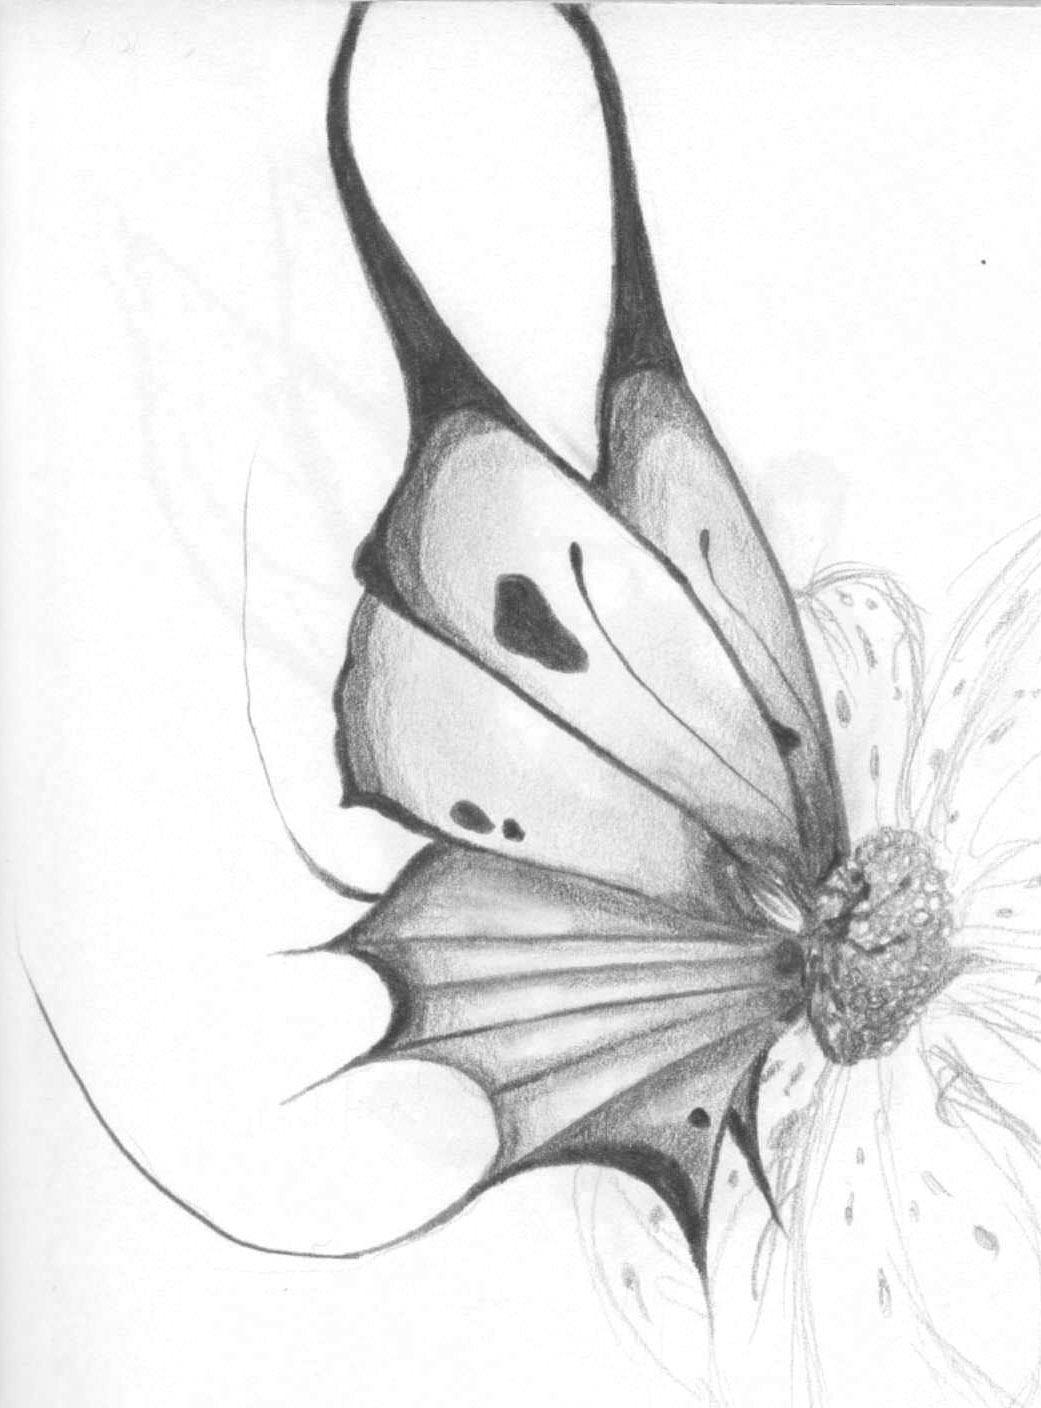 Butterfly On Sketched Flower By StarAphelion On DeviantArt